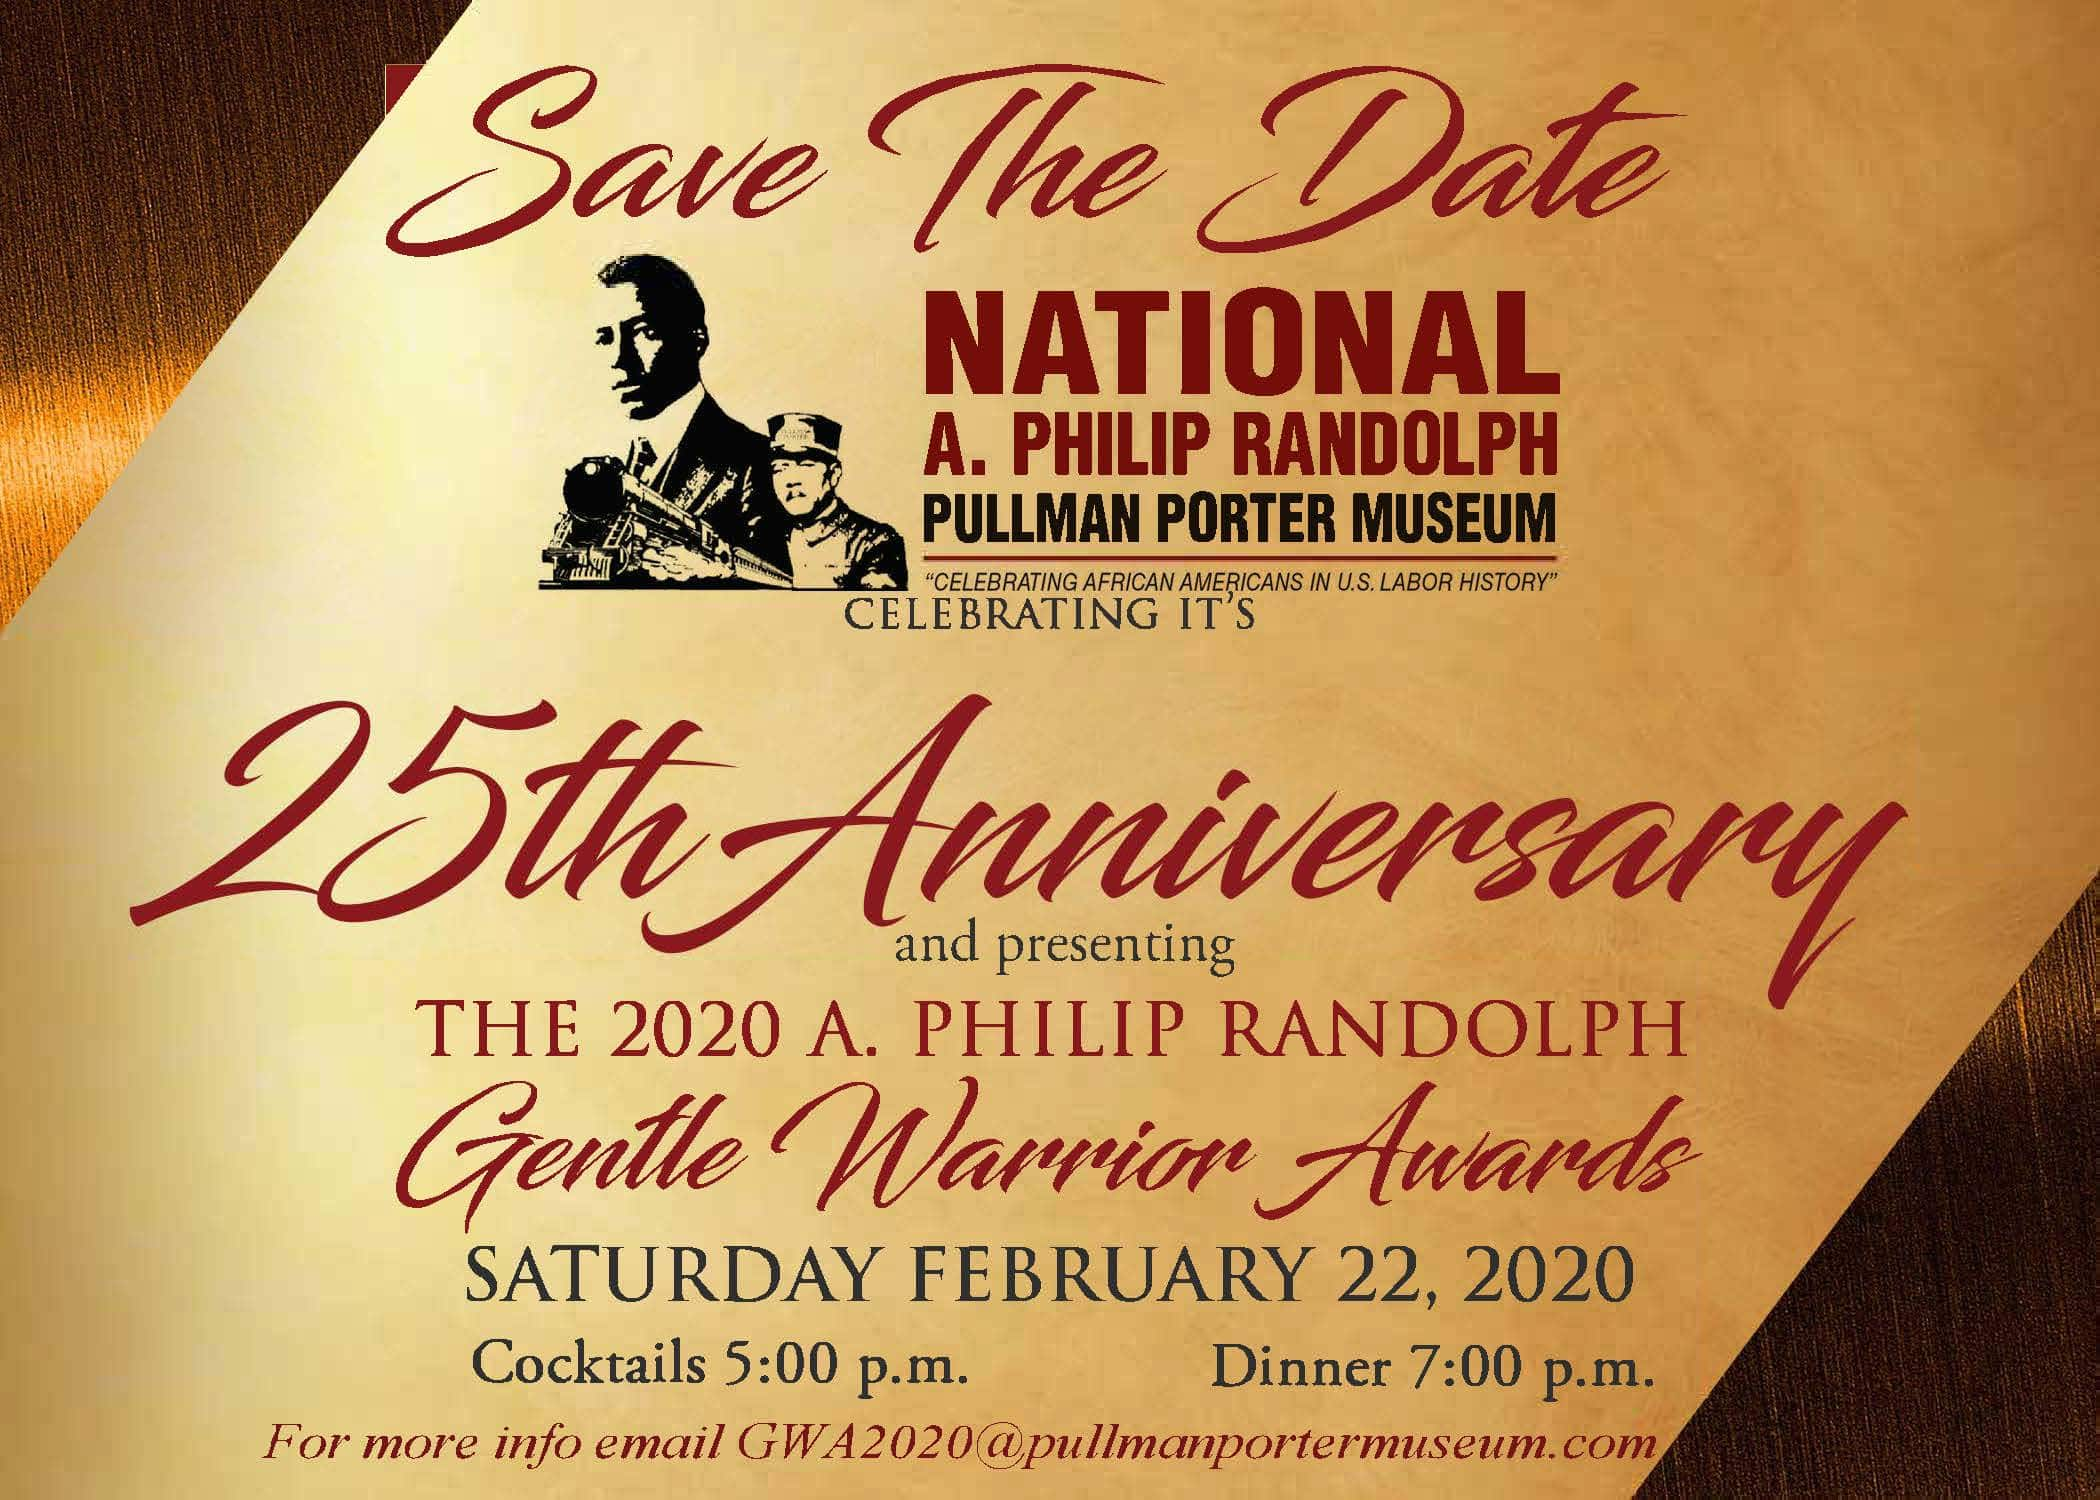 2020 Gentle Warrior Awards